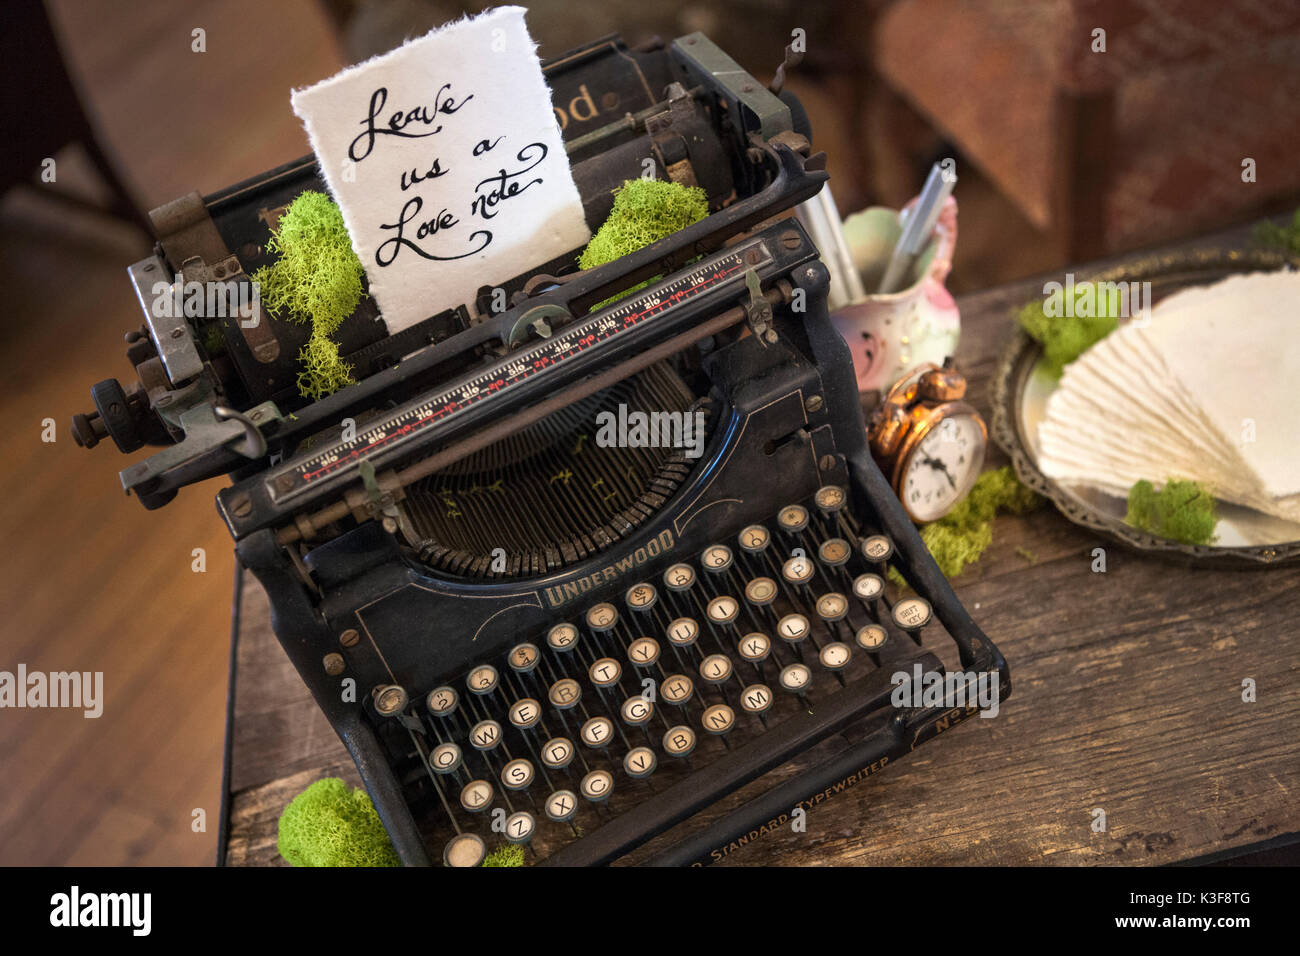 High Angle View of Old Typewrite with Hand Written Note - Stock Image